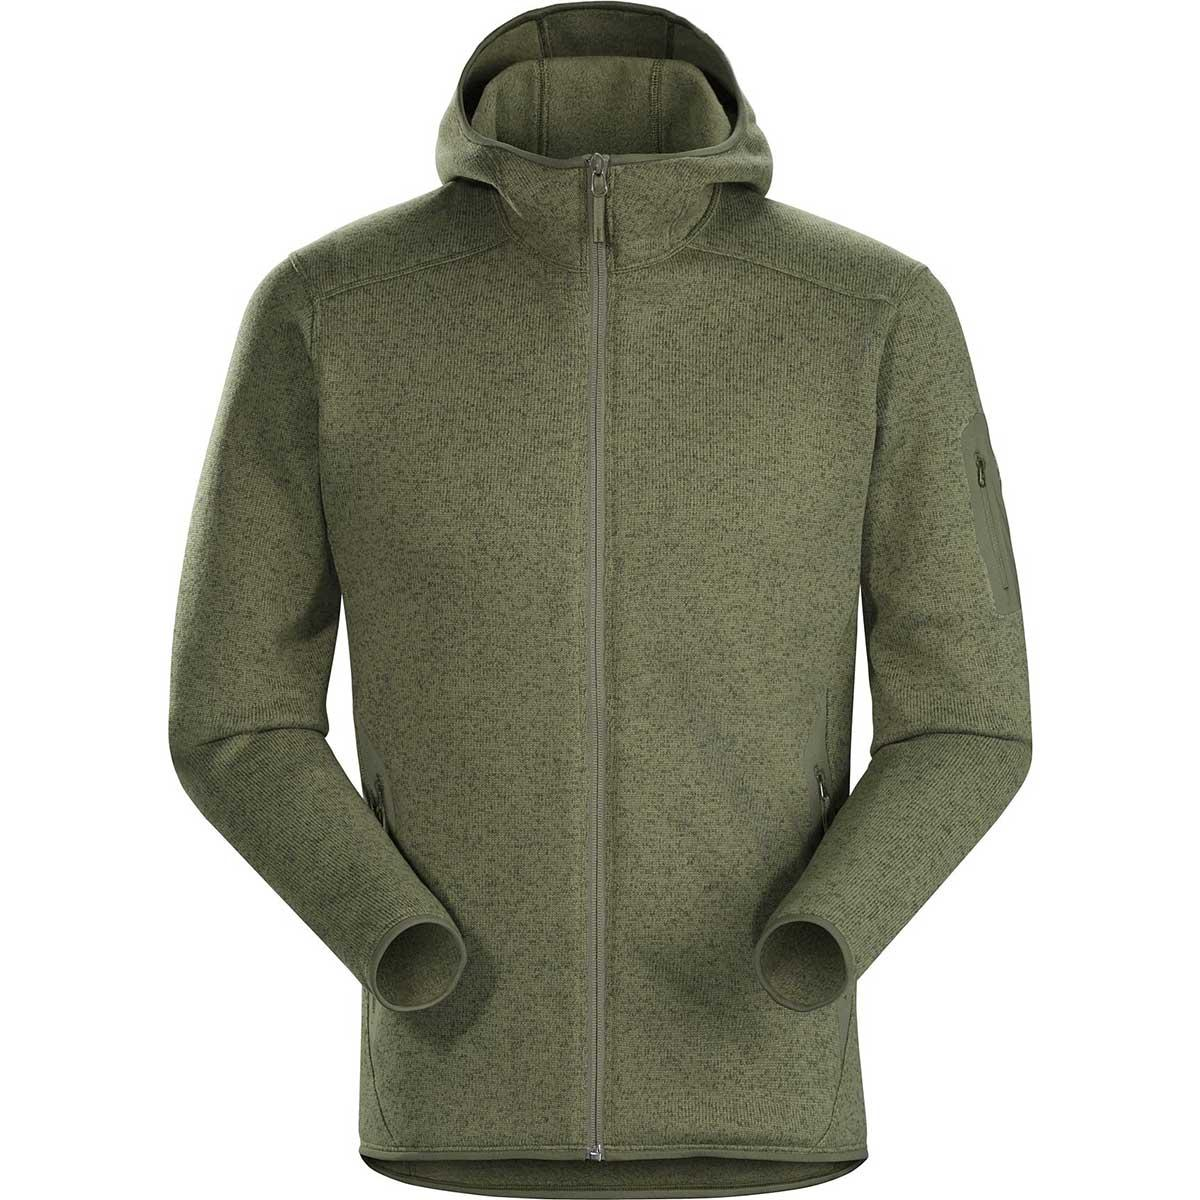 Arcteryx men's Covert Hoody in Arbour Heather front view